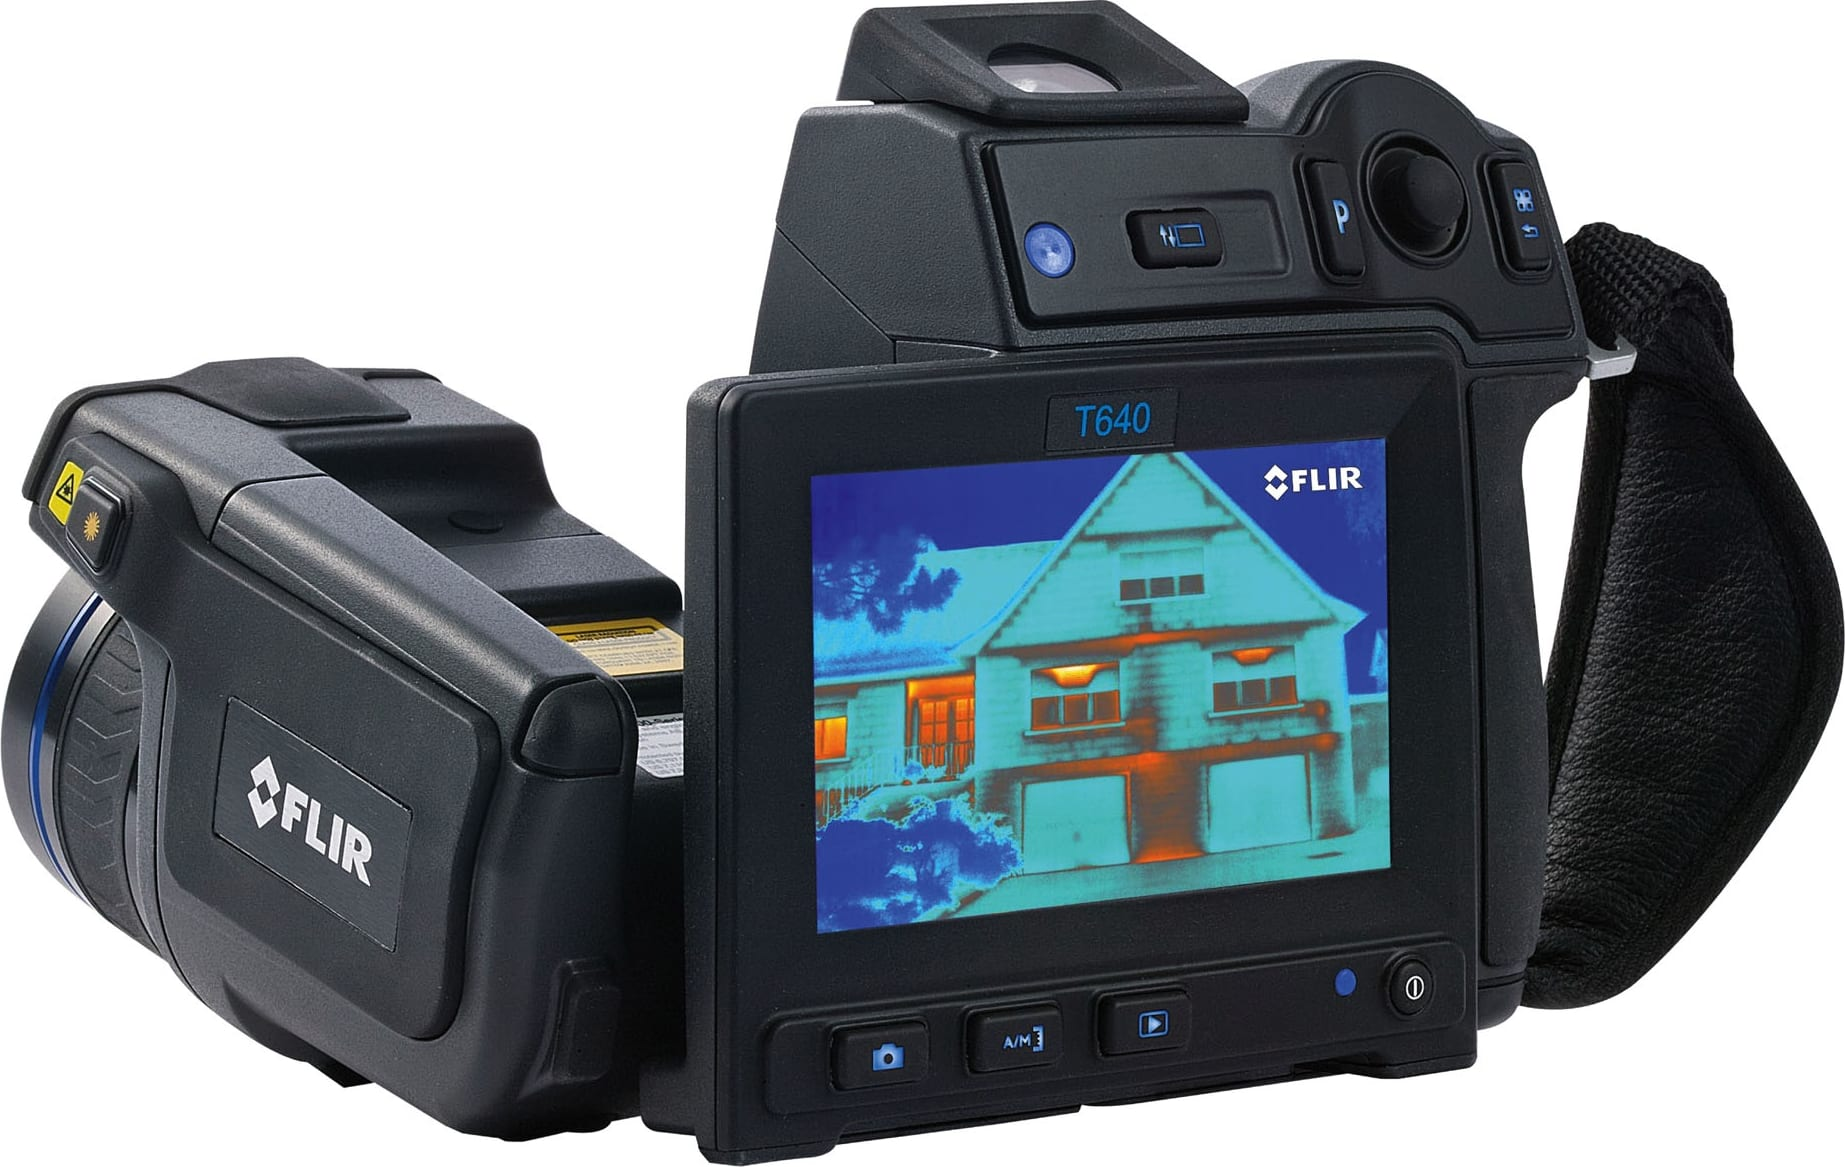 FLIR_T640bx-NIST-25_T640bx_With_NIST_Calibration_Main_View